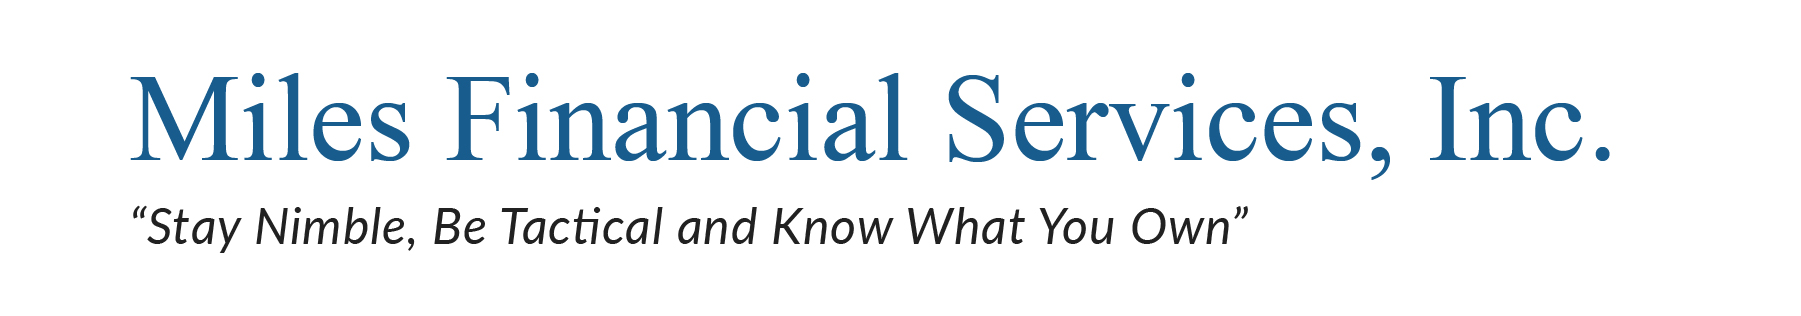 Miles Financial Services, Inc.